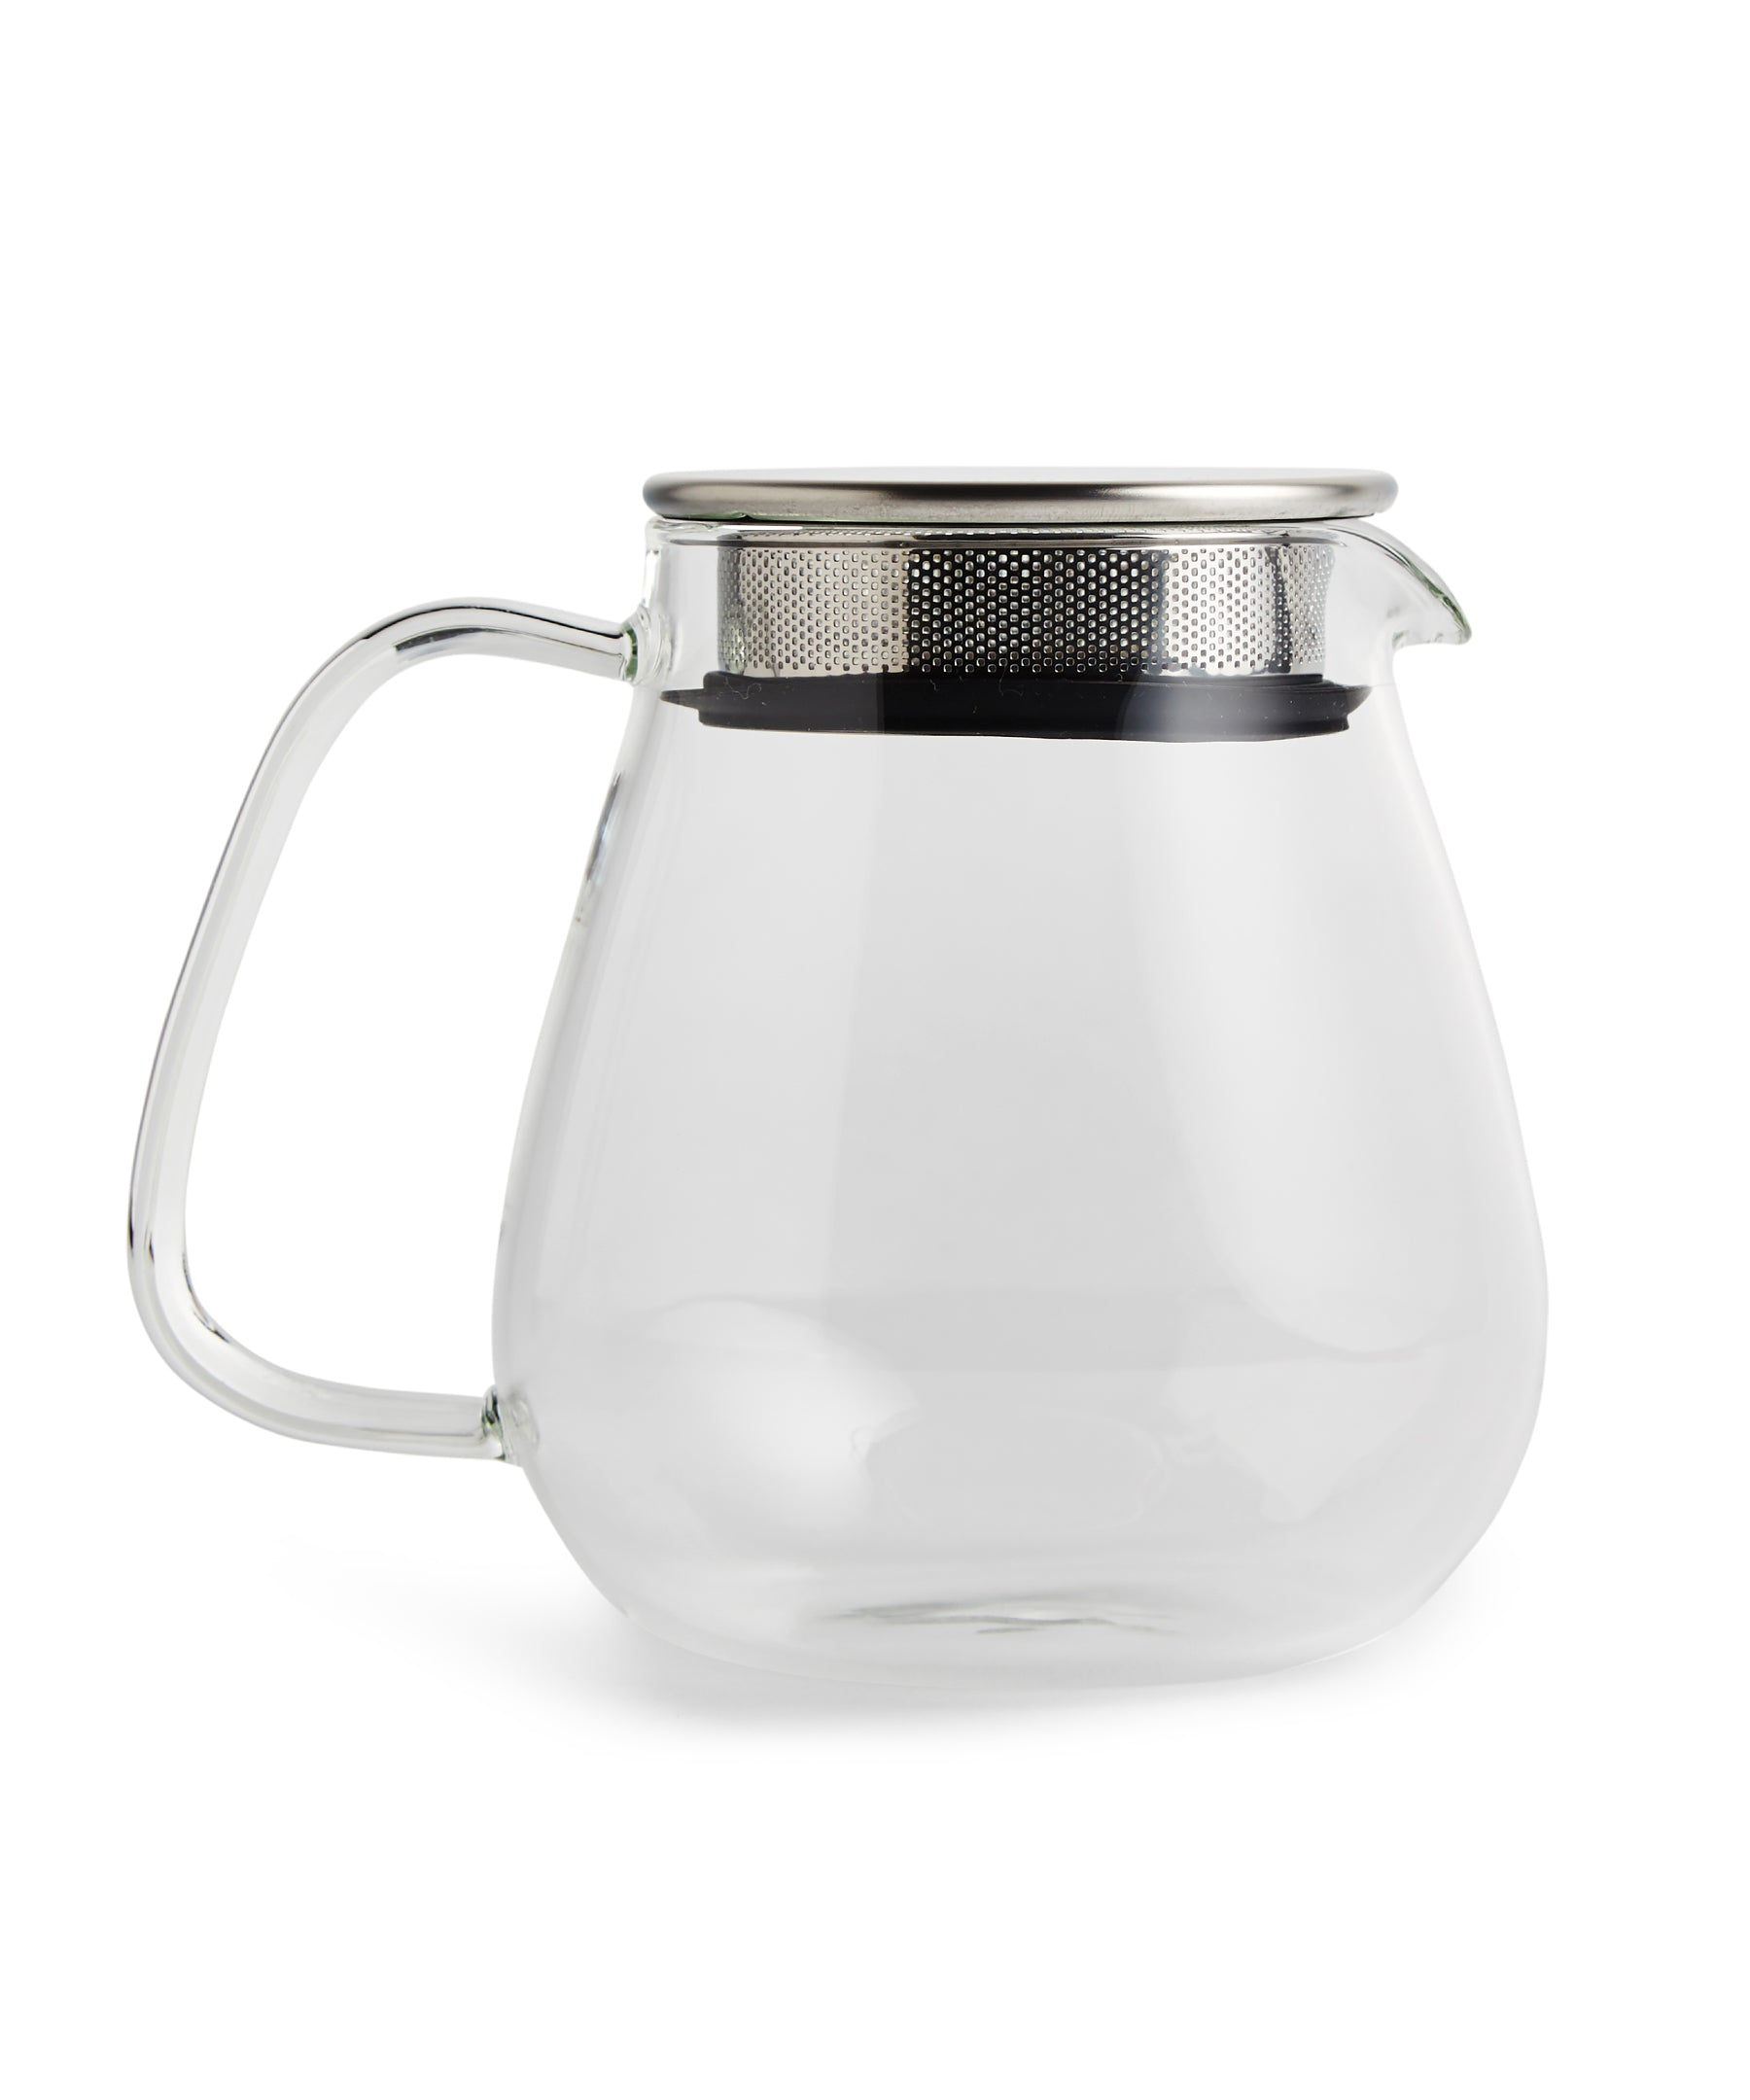 Unitea One Touch Teapot 720ml by Kinto